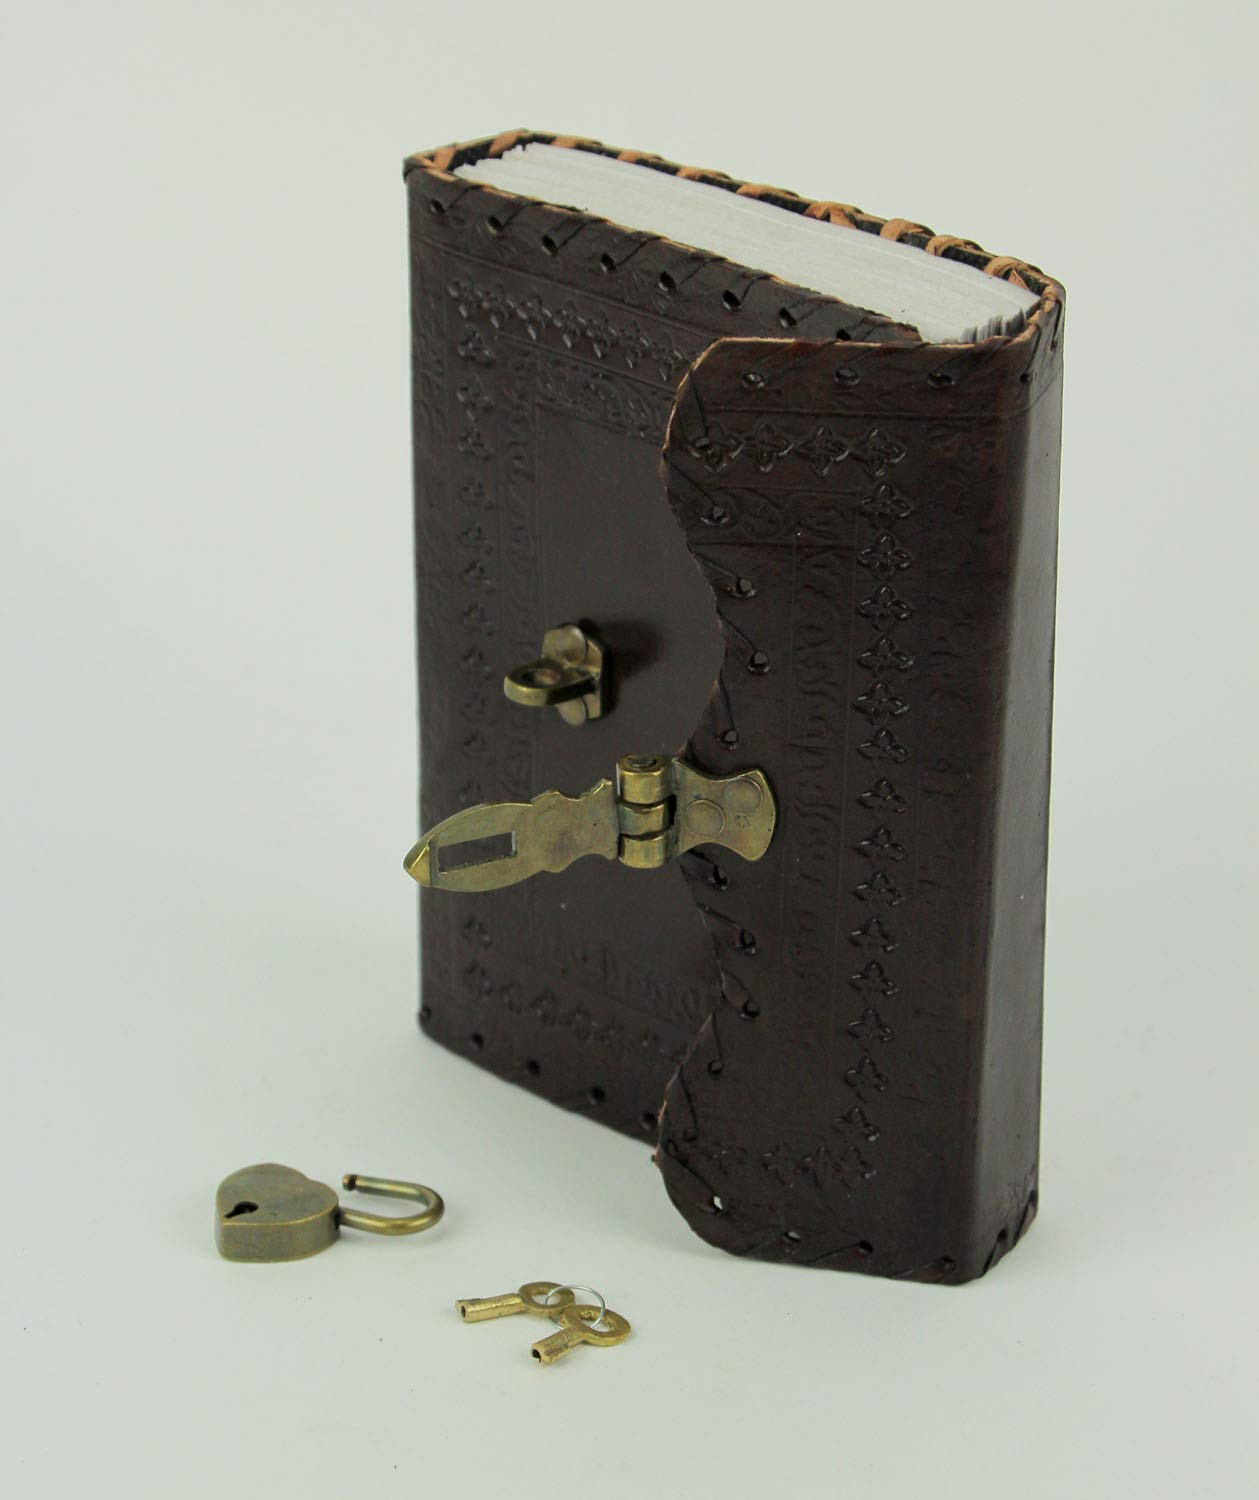 a85a23aaec1c Amazon.com  Fantasy Gifts 2807 Stitched Lock and Key Embossed Leather  Journal 5 x 7 5 x 7 inches